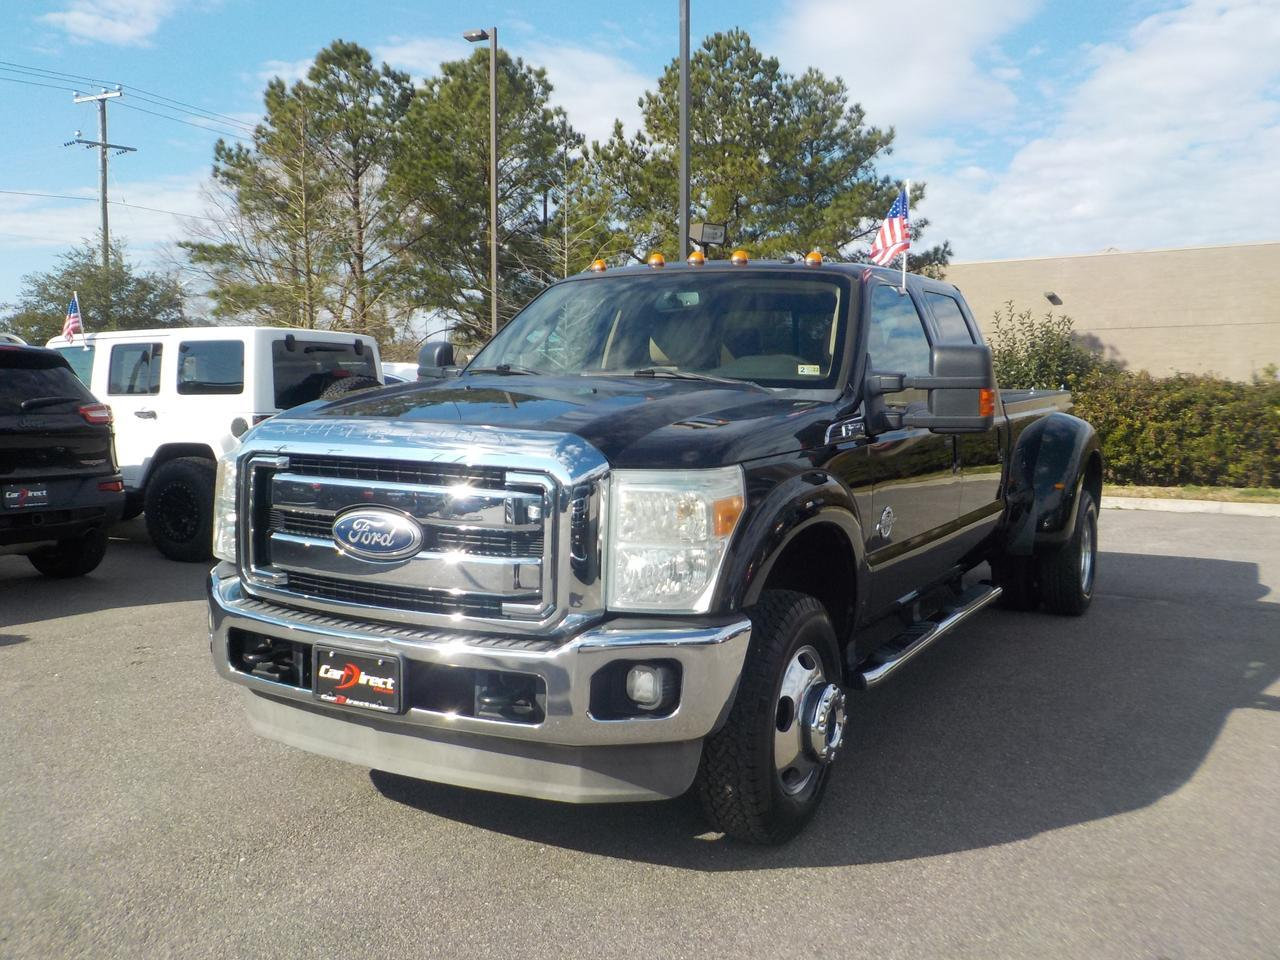 2011 FORD F-350 CREW CAB LARIAT DUALLY LONGBED DIESEL 4X4, ONE OWNER, ARIZONA TRUCK NO RUST, ONLY 57K MILES! Virginia Beach VA